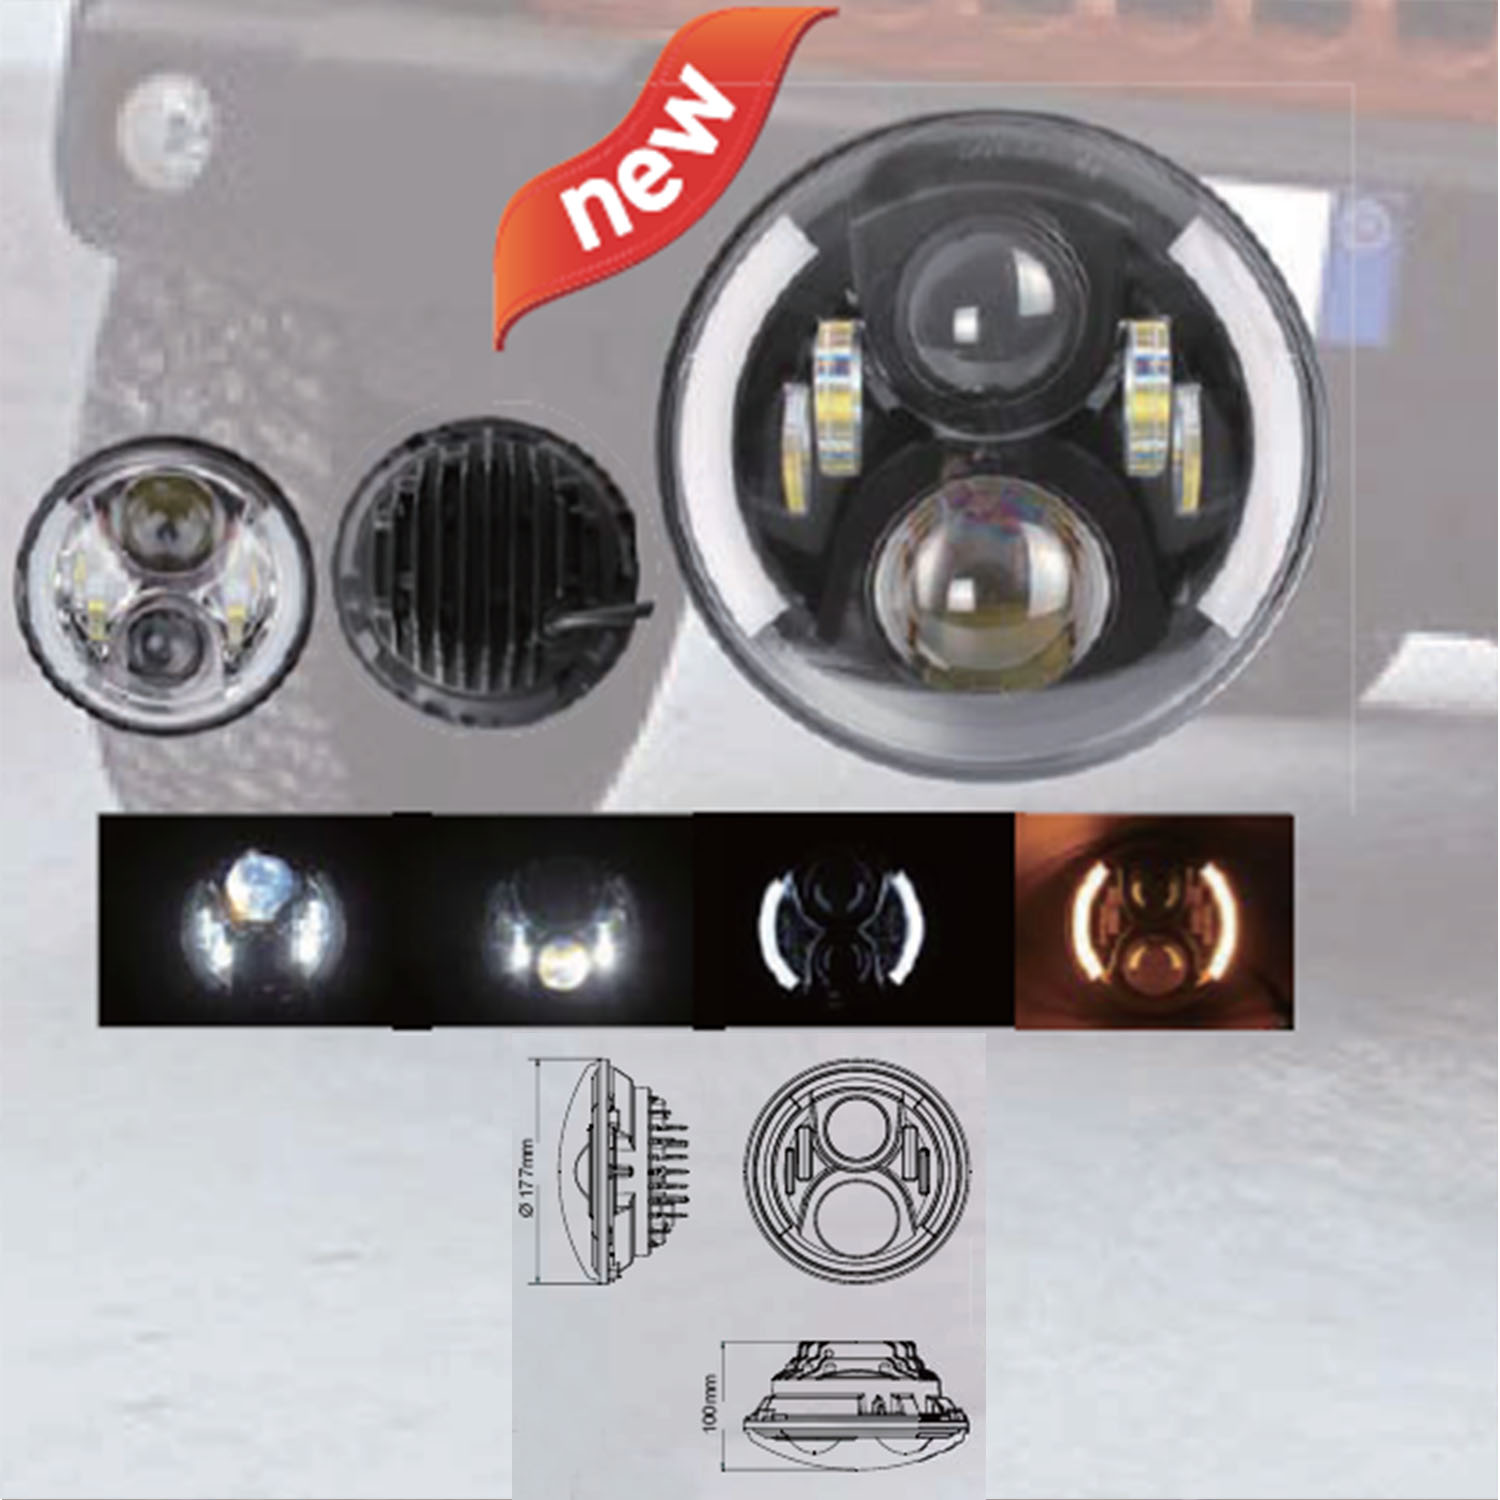 KAWELL 7 inch 70W CREE Round High Beam Low Beam LED Headlight For Jeep Wrangler with Angel Eyes and Daytime Running Light